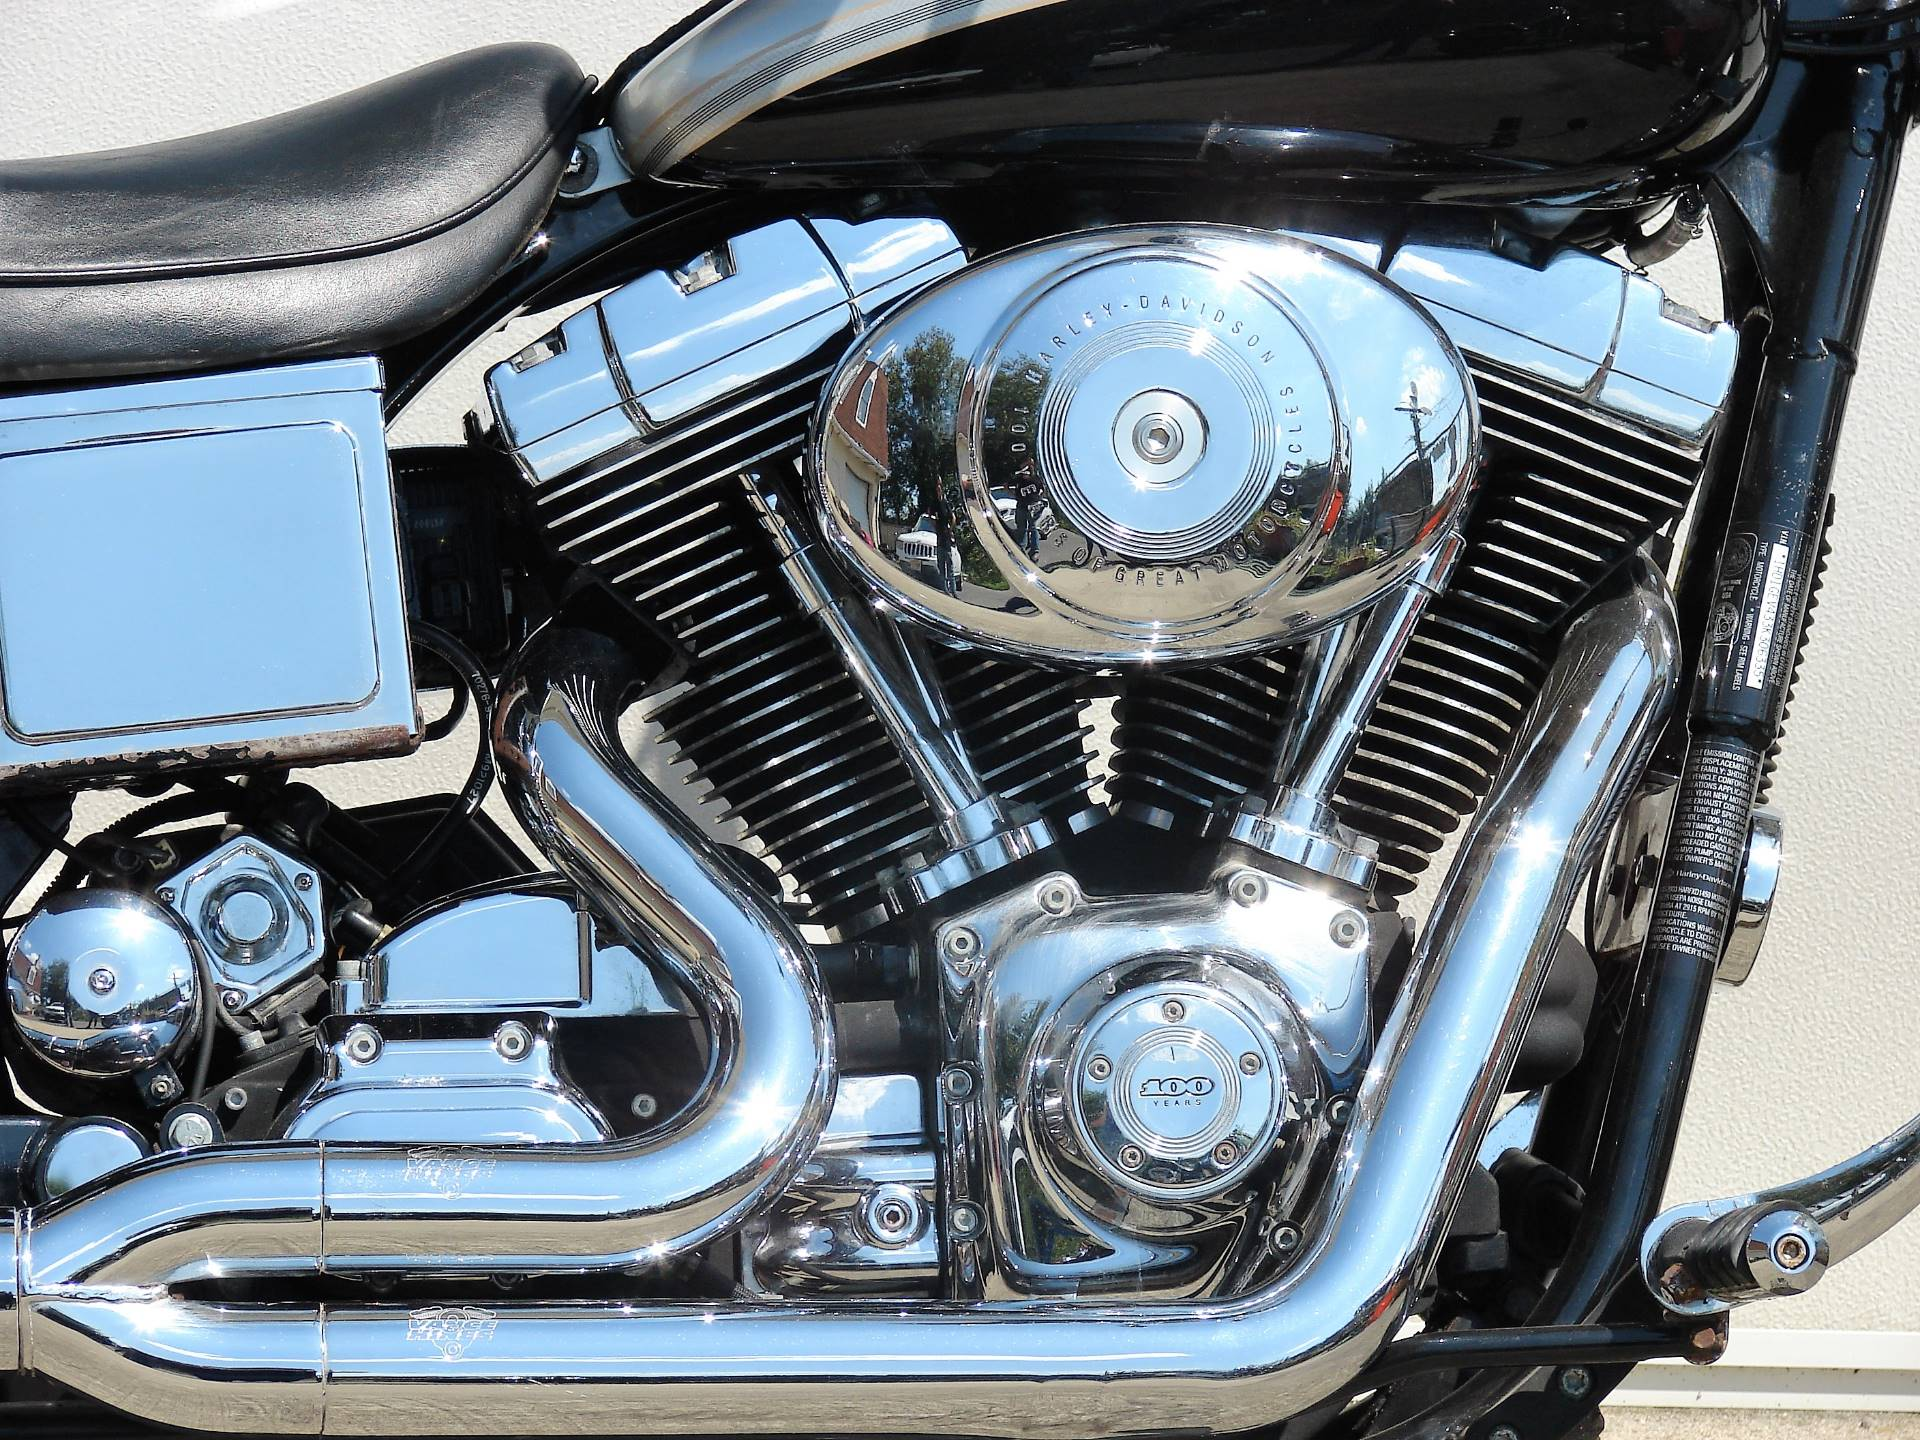 2003 Harley-Davidson FXDWG Dyna Wide Glide (Anniversary Edition) in Williamstown, New Jersey - Photo 12